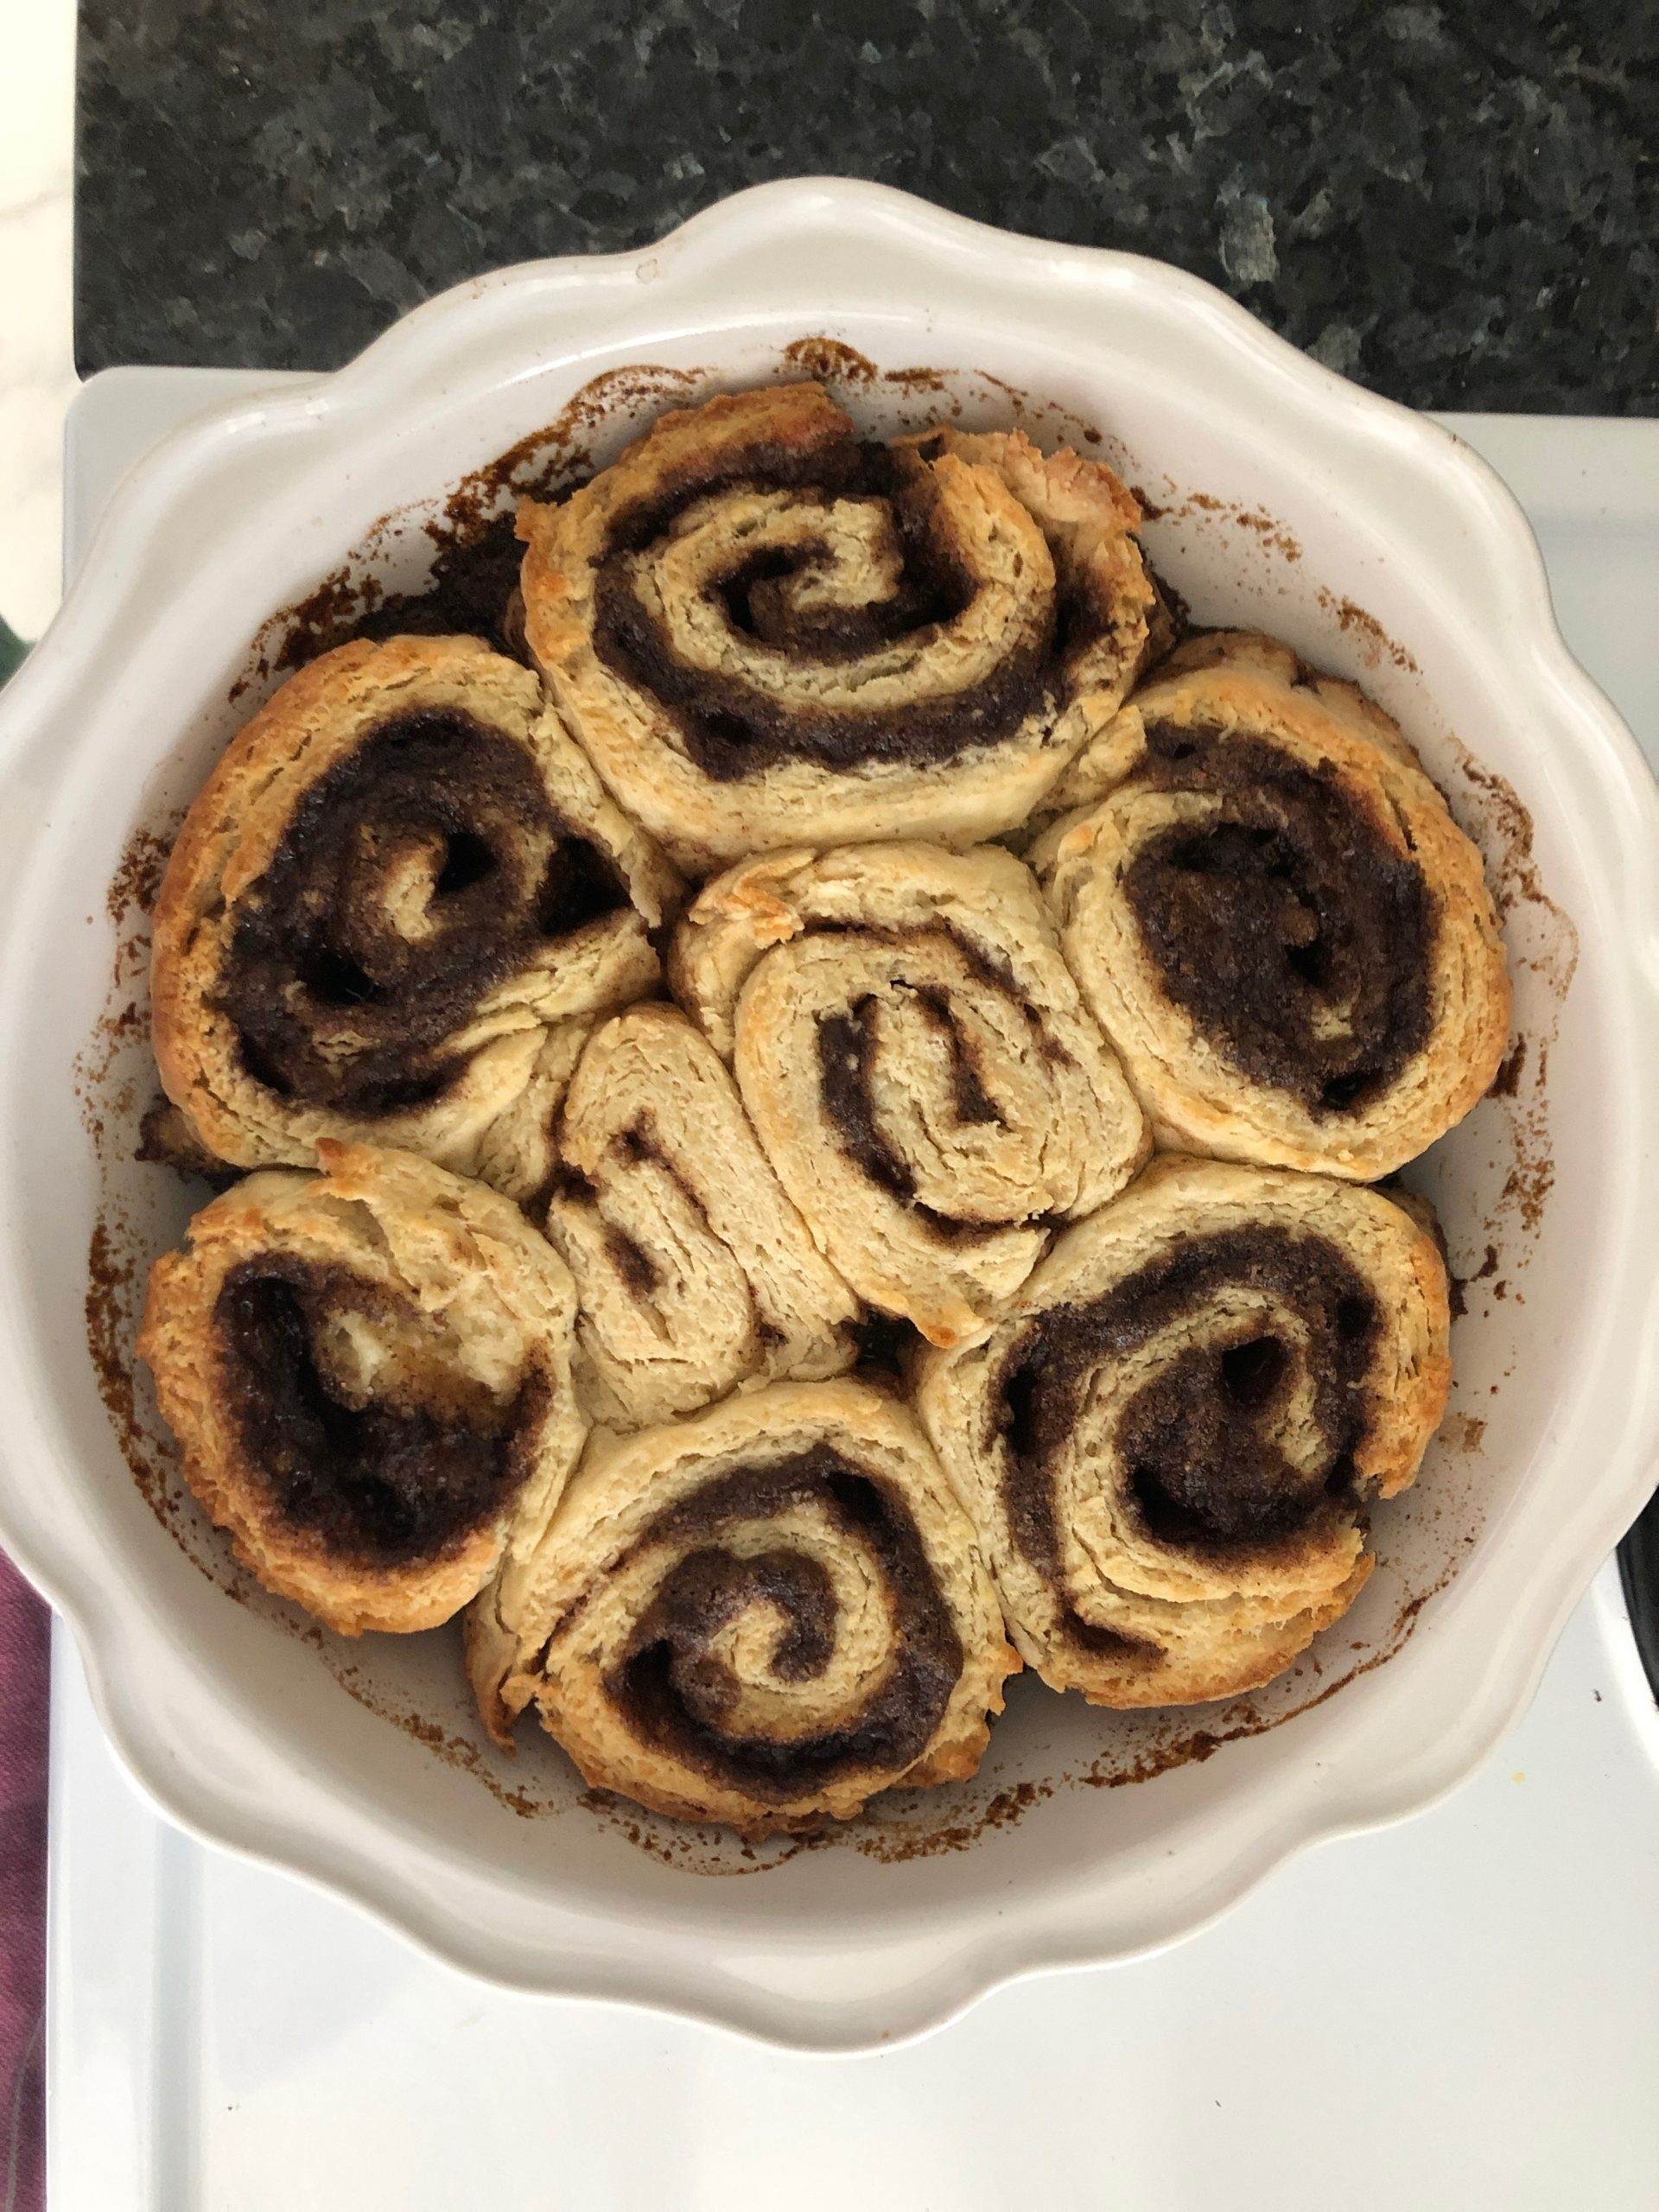 Yeast Free Cinnamon Rolls After Baking